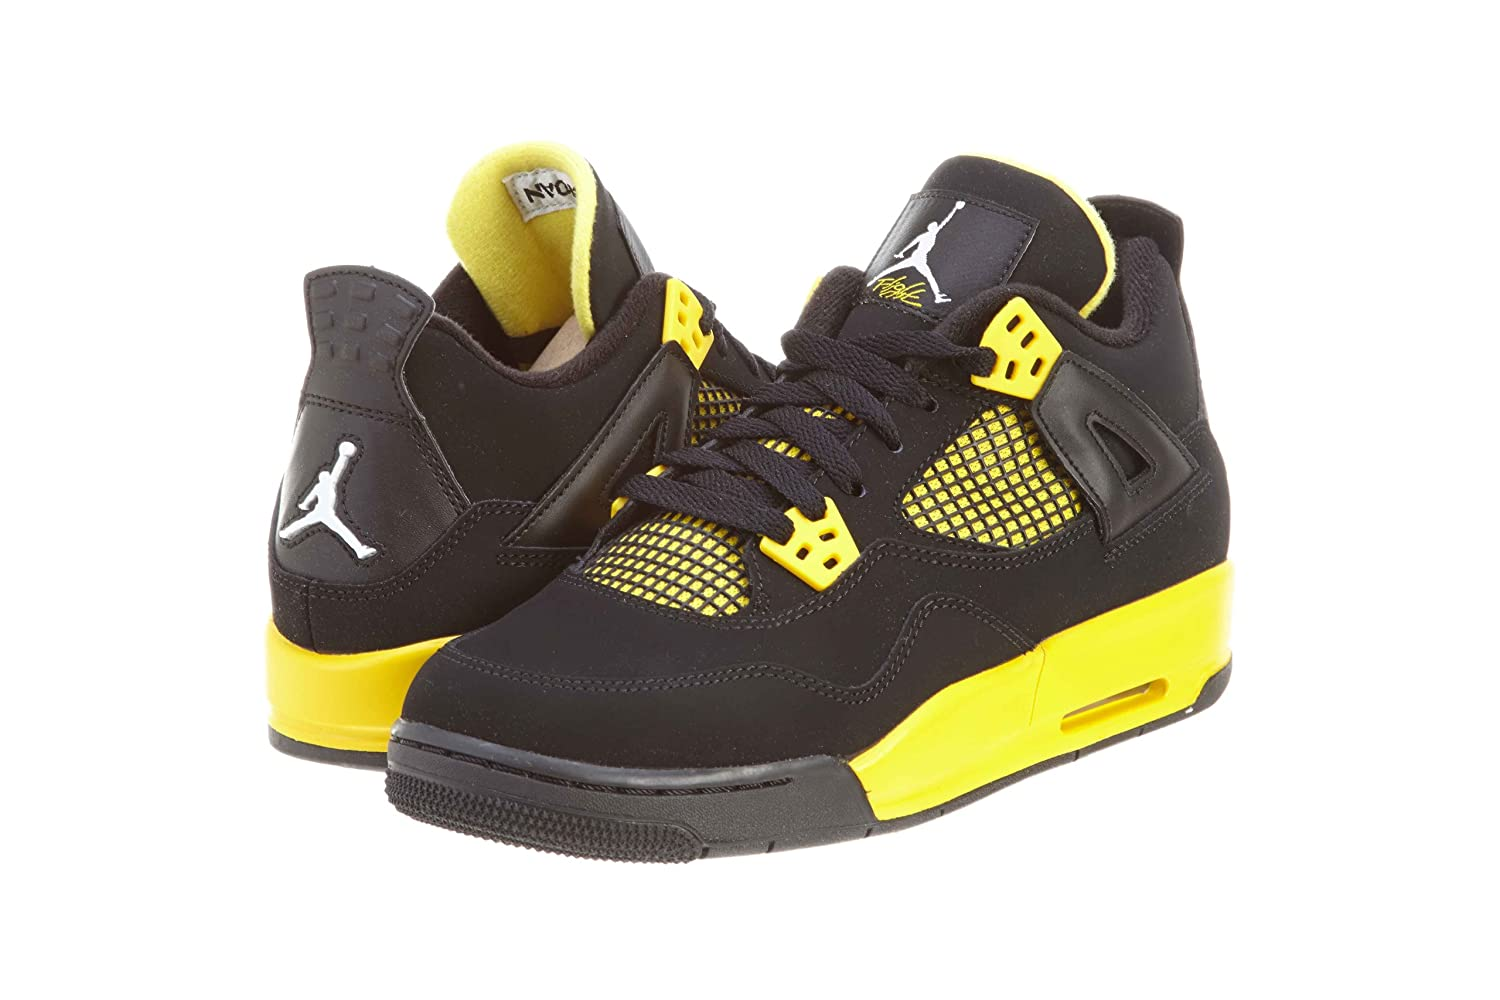 Black, white-tour yellow Nike Jordan Kids Air Jordan 4 Retro Bg Basketball shoes